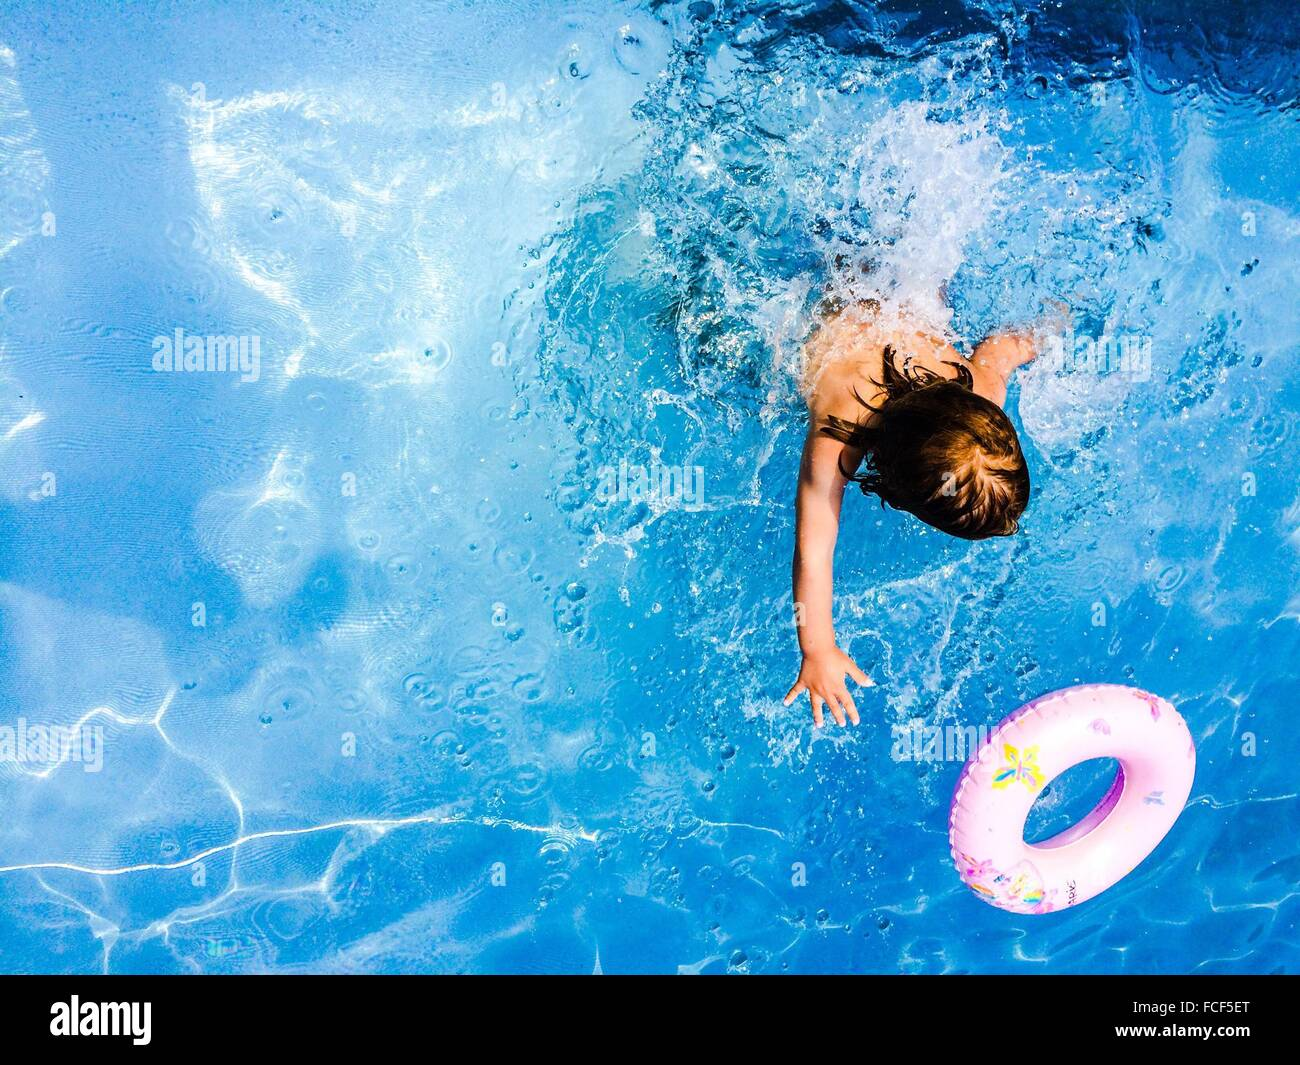 Person Swimming In A Pool - Stock Image